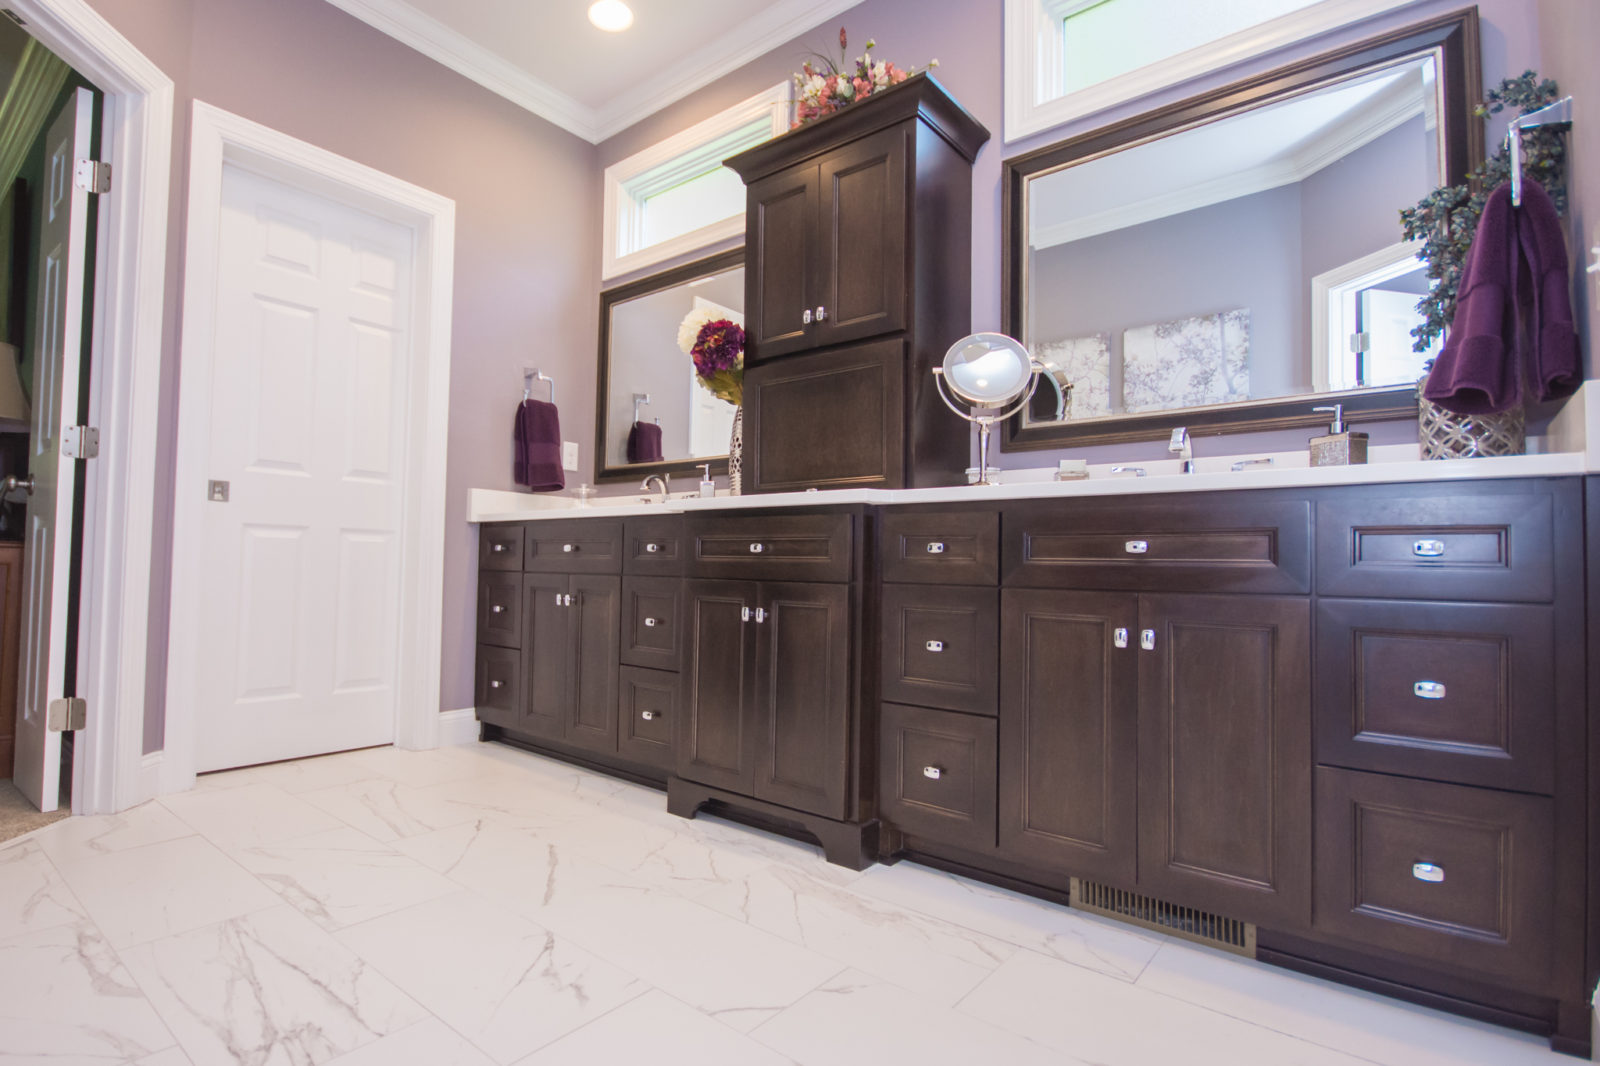 Waxhaw, NC home, bathroom with wooden cabinets